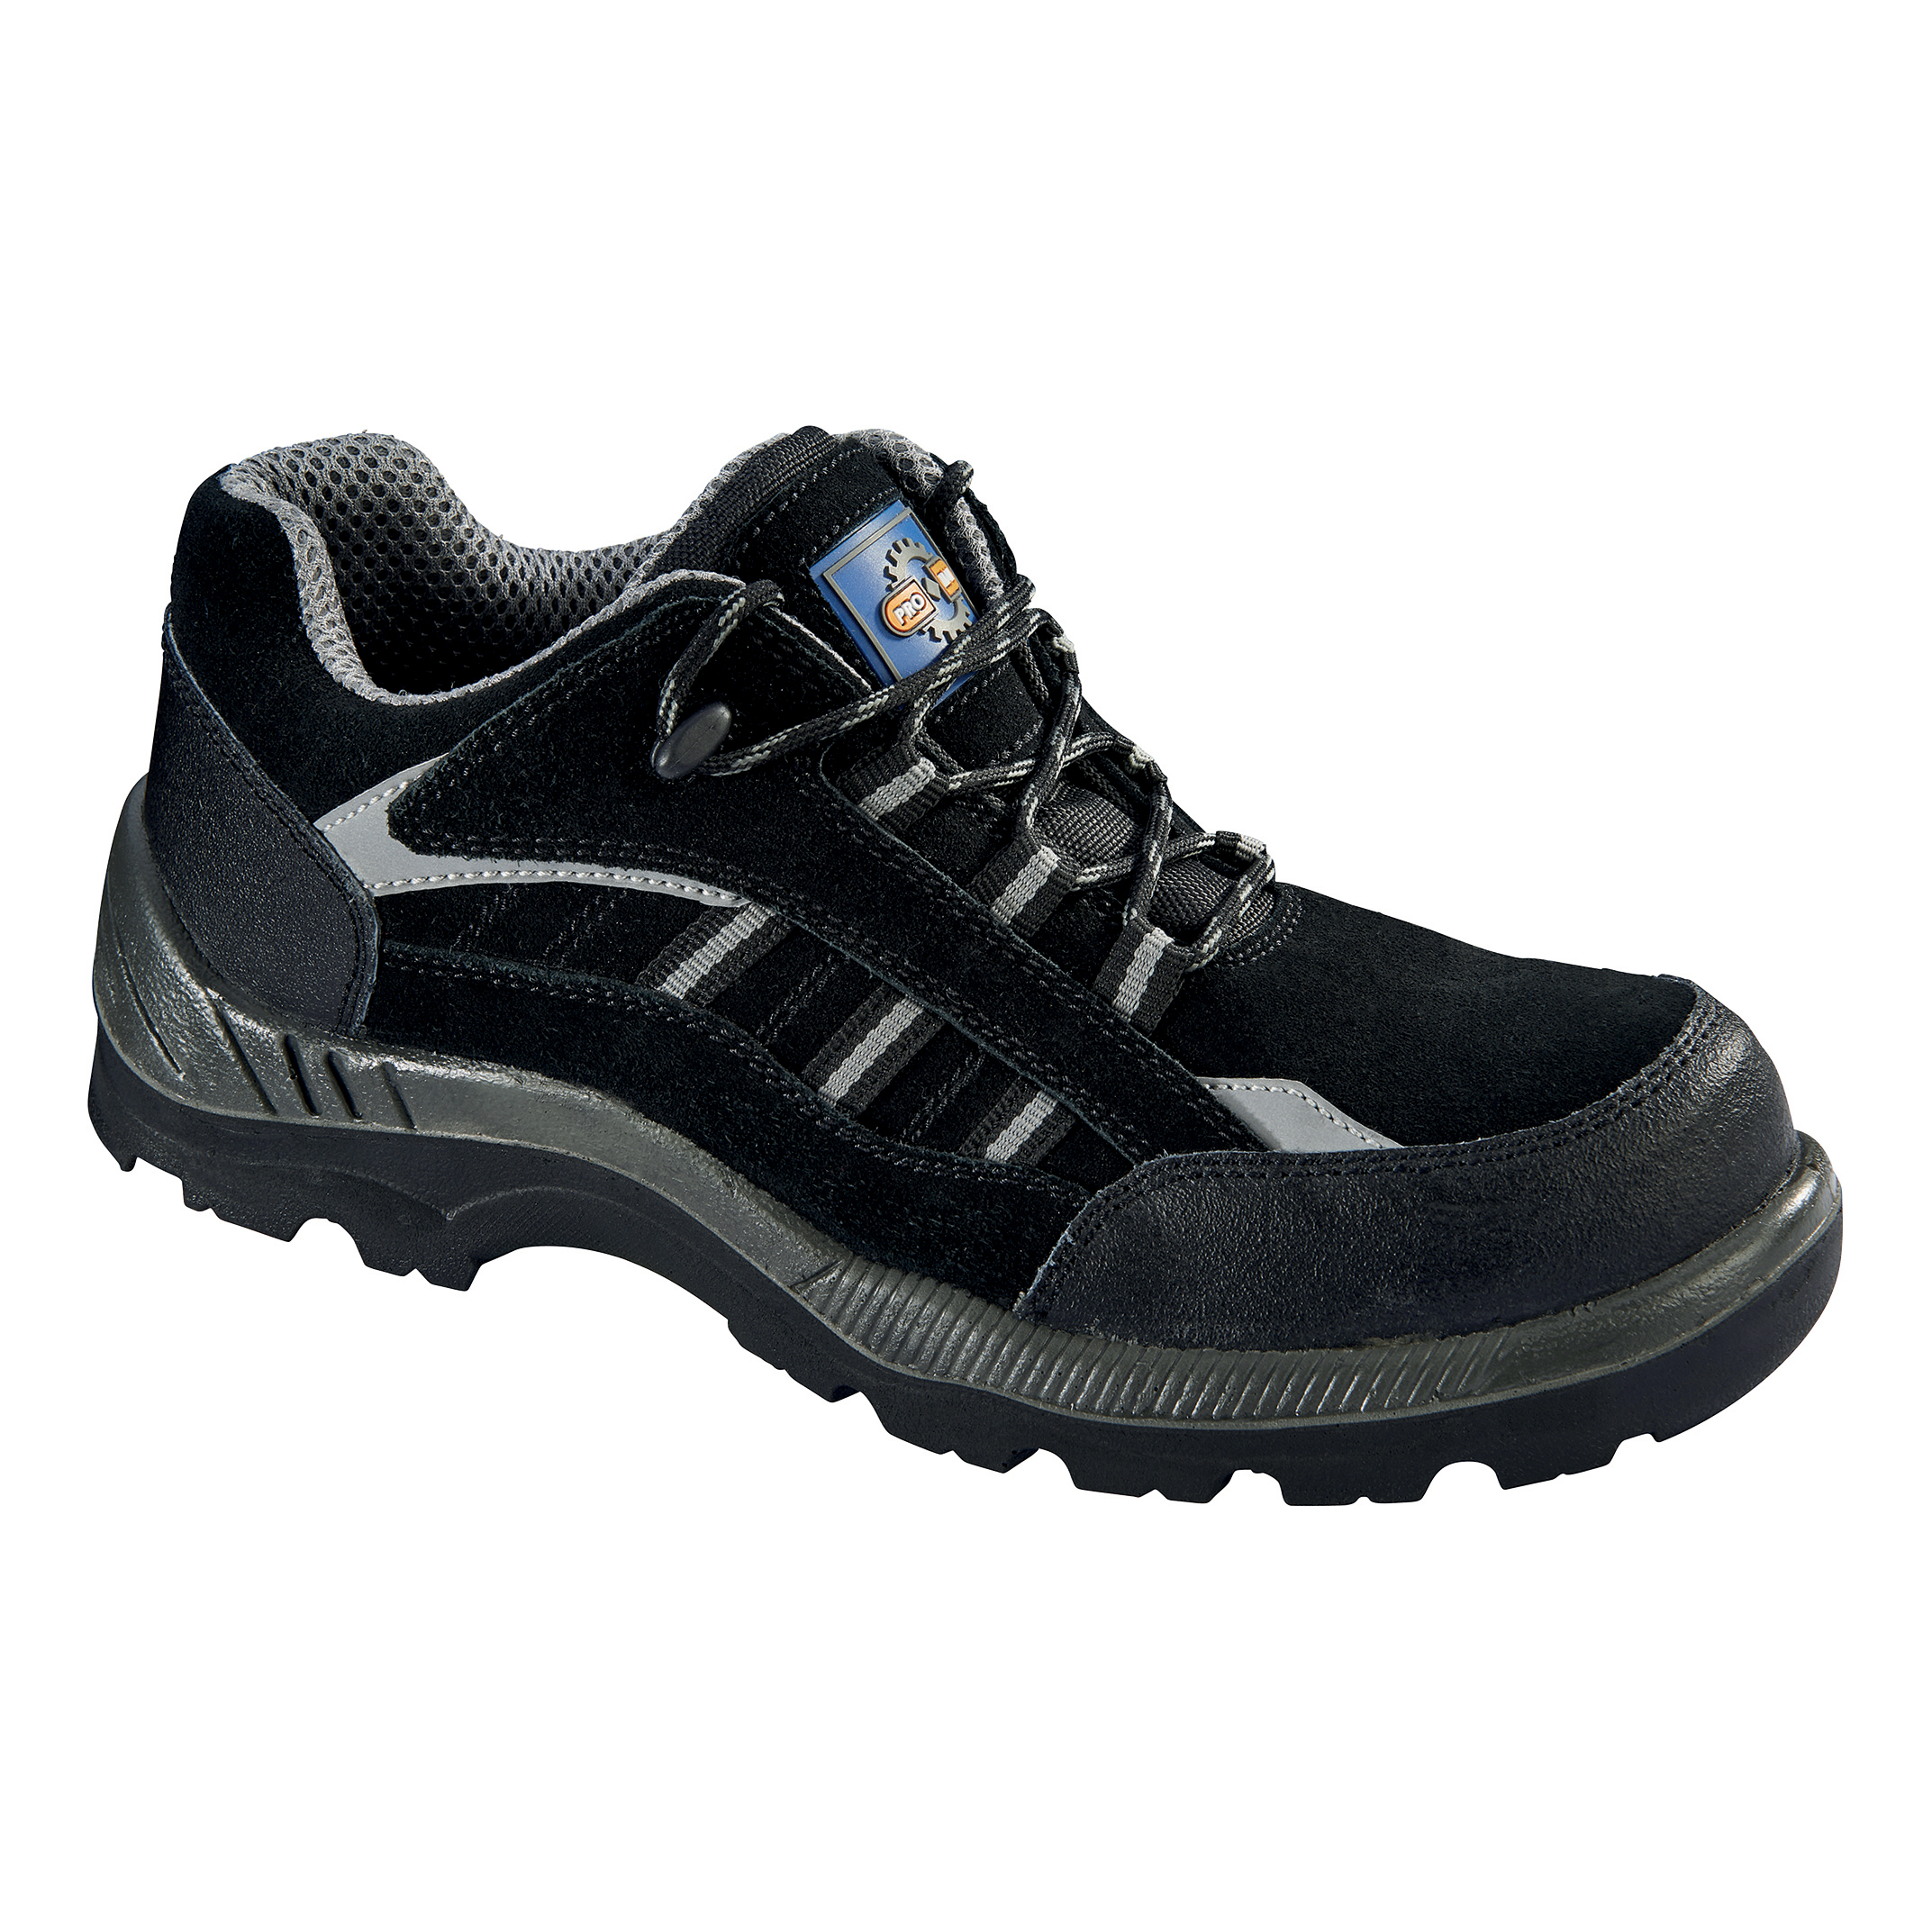 Safety shoes Rockfall ProMan Trainer Suede Fibreglass Toecap Black Size 7 Ref PM4040 7